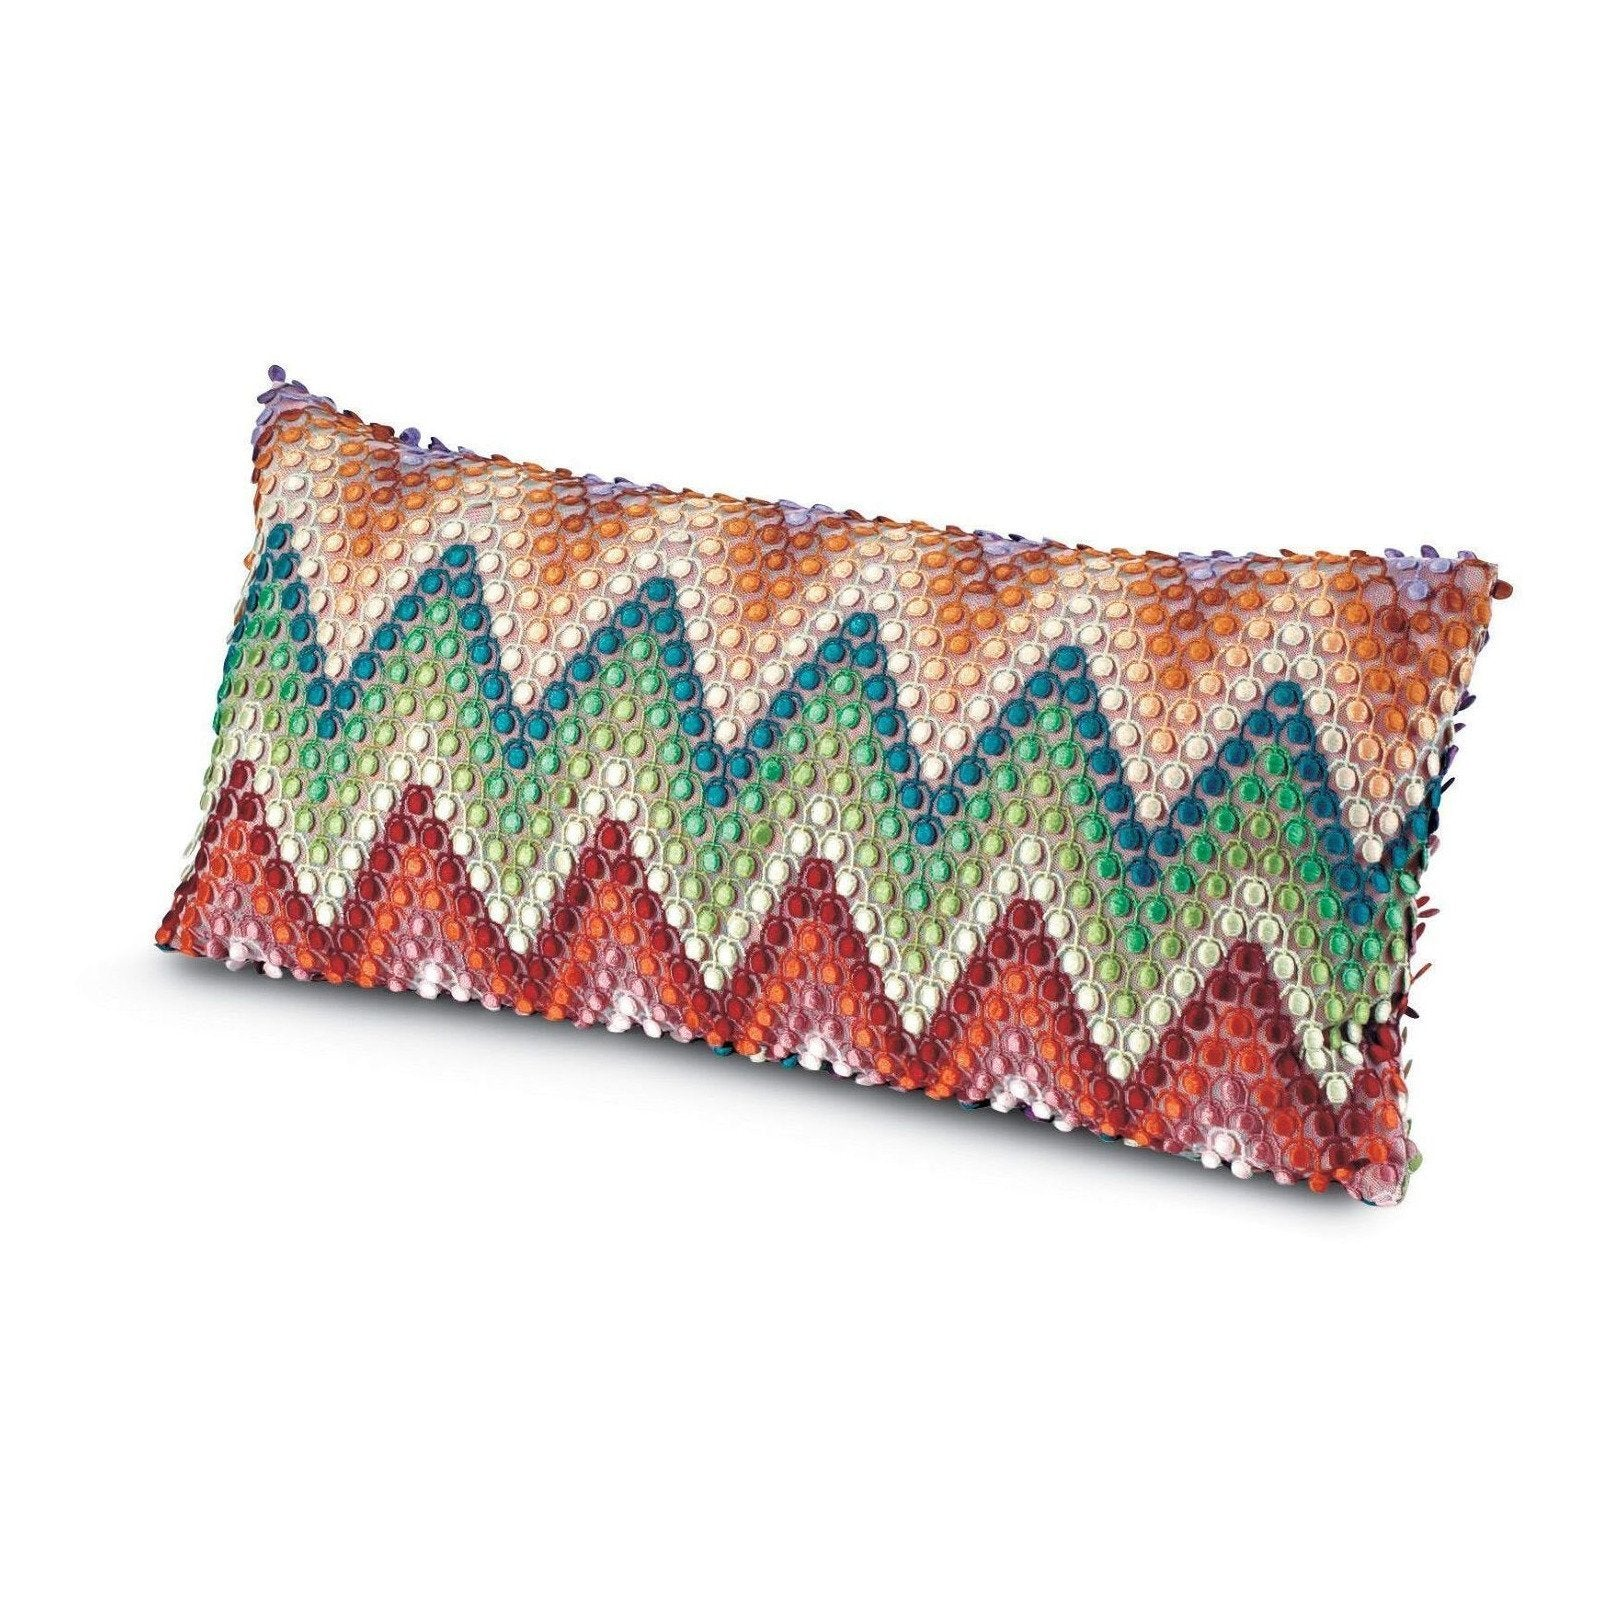 "Naciria 159 cushion 12"" x 24"""